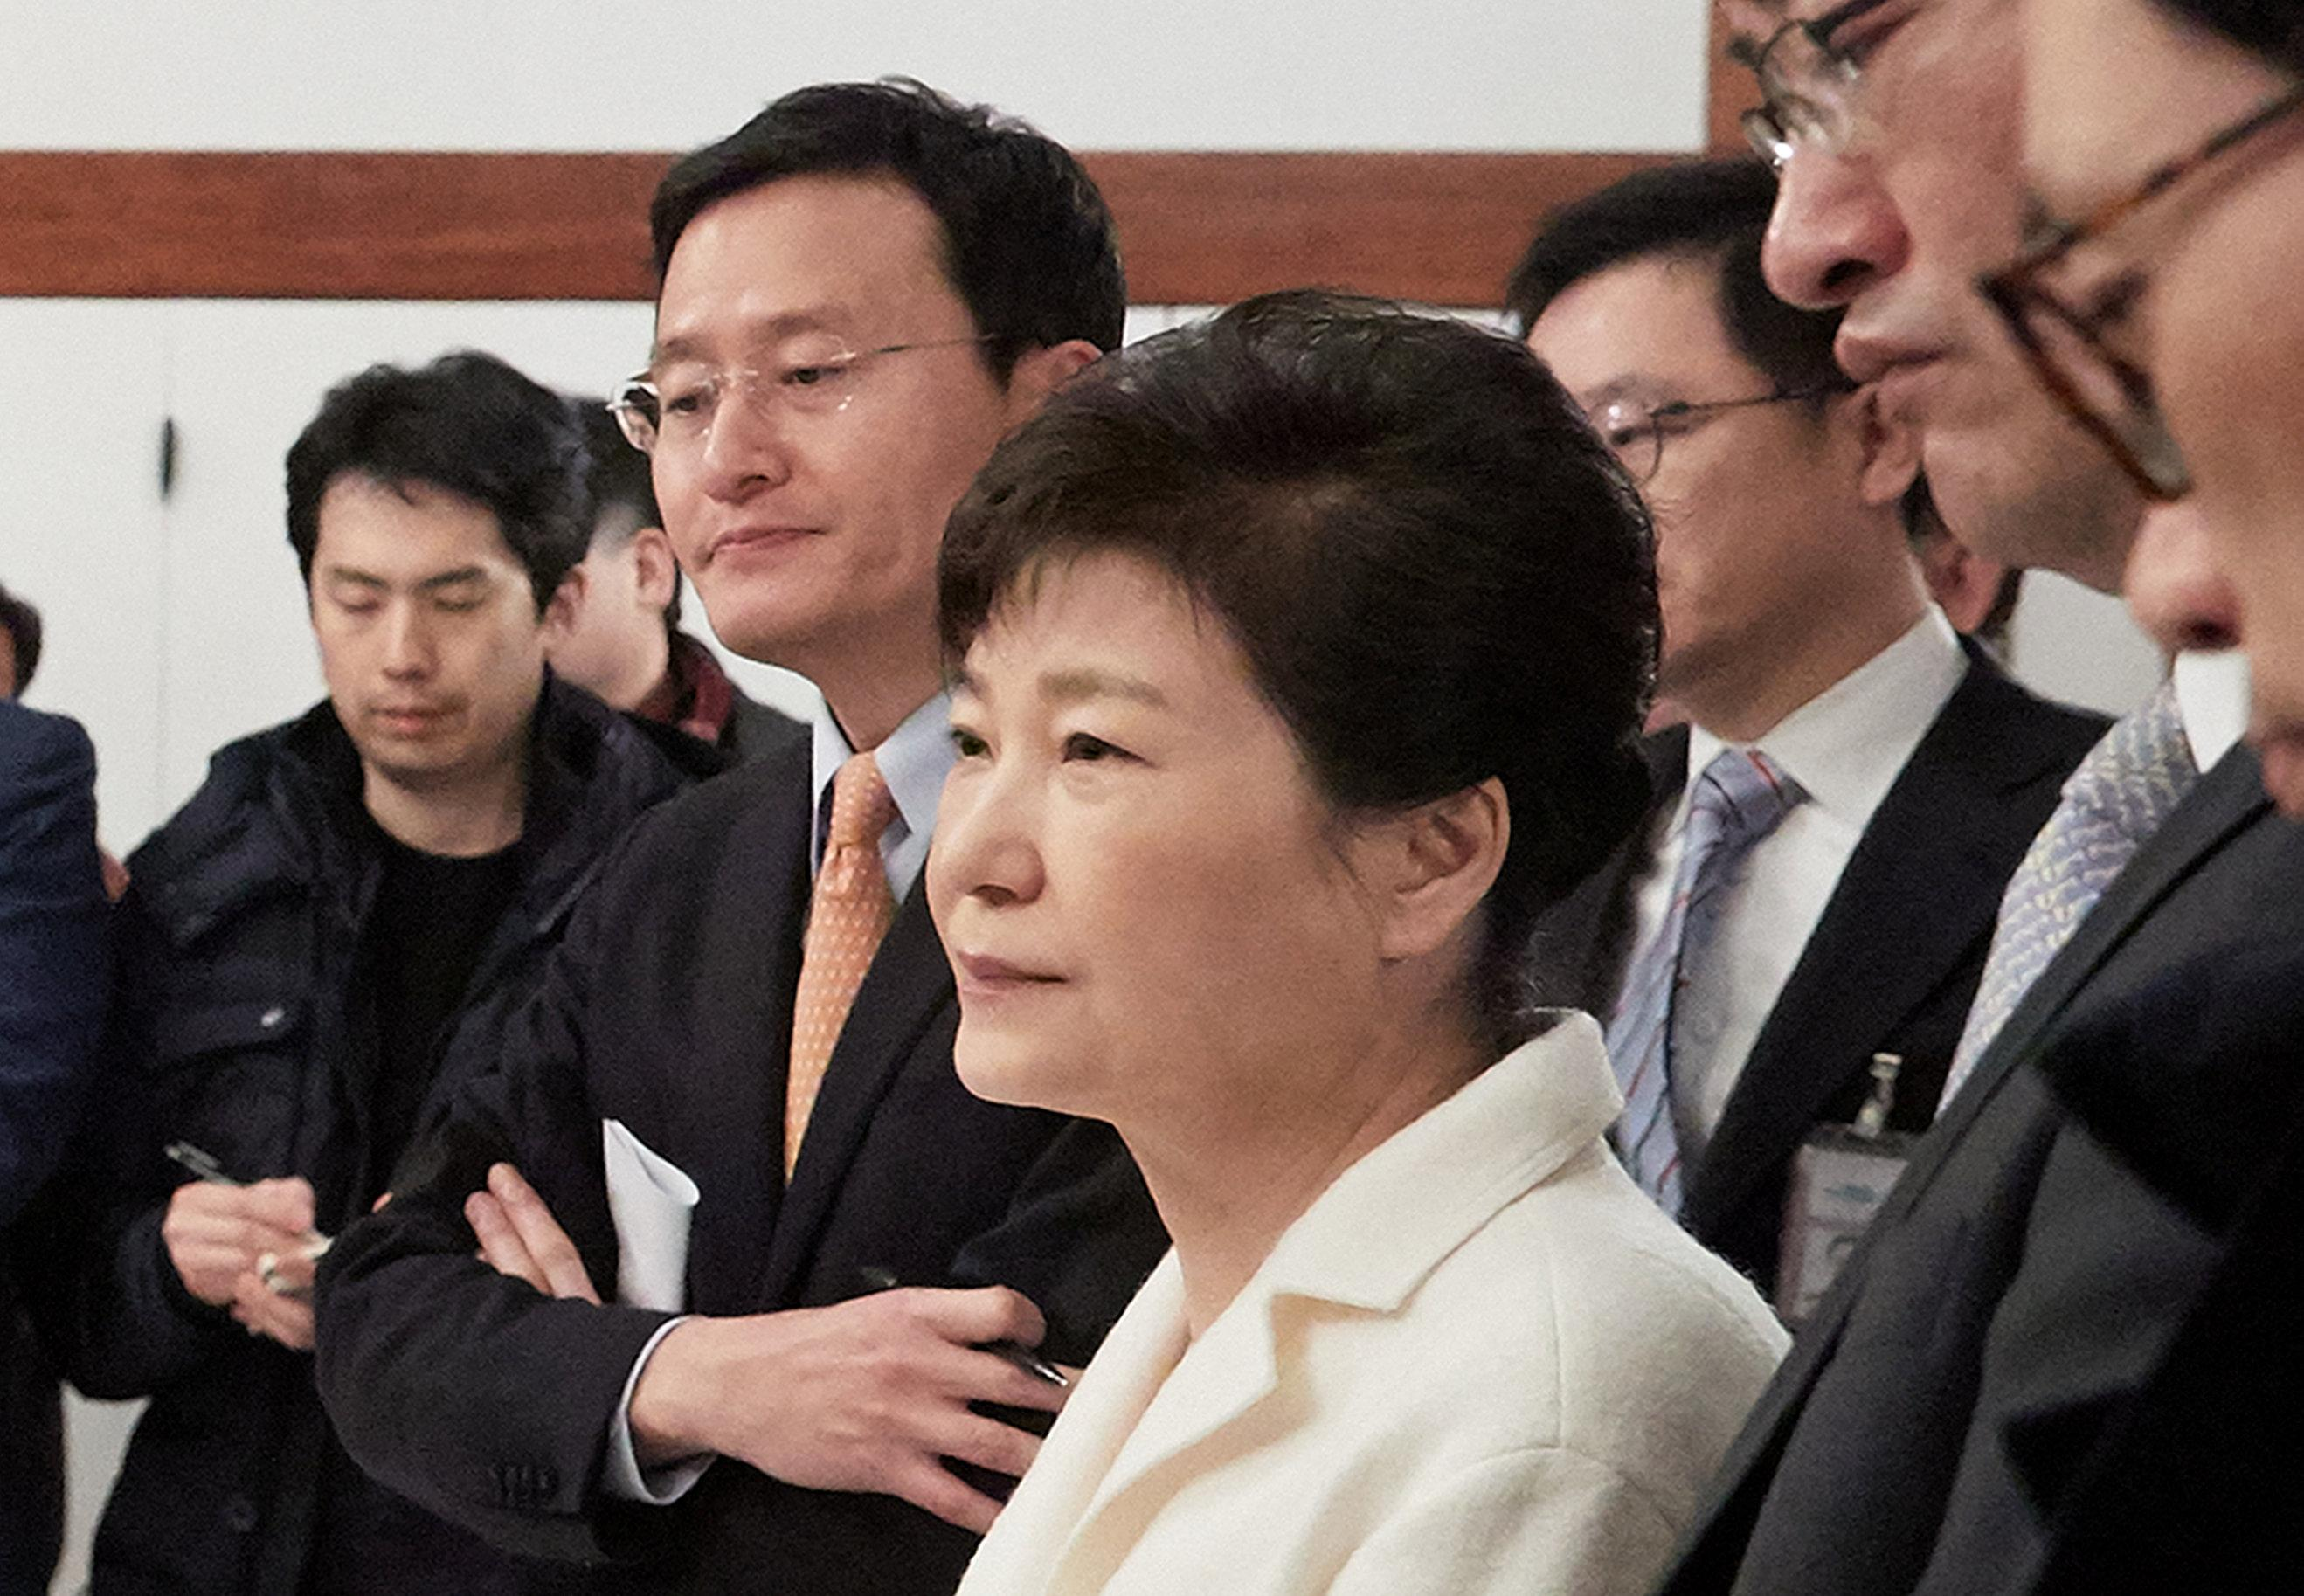 Impeachment trial begins of South Korean president over corruption scandal